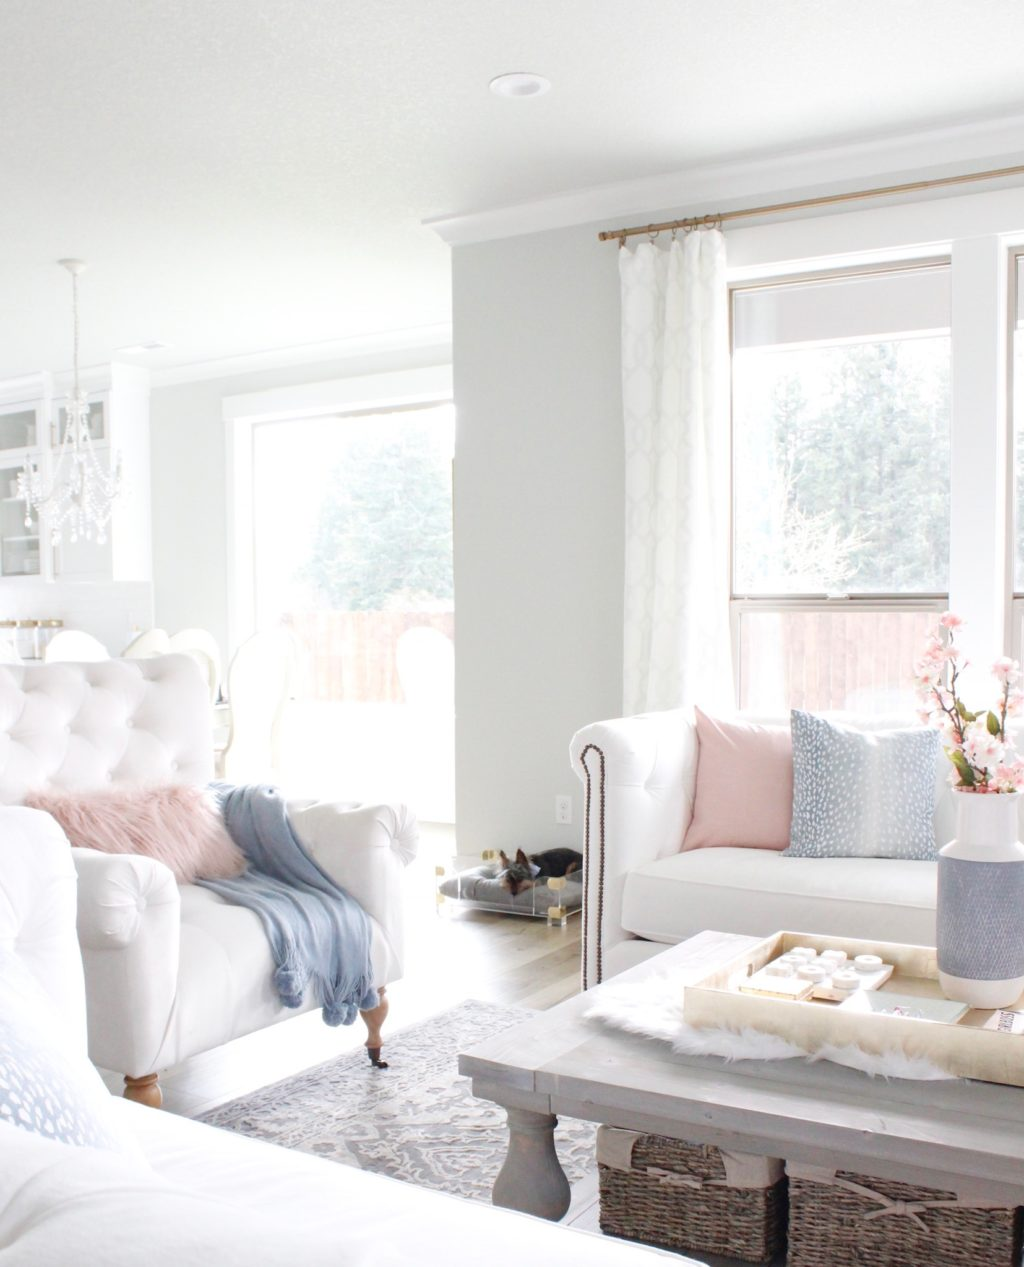 Spring Home Tour With Accents Of Blush & Blue - Summer Adams